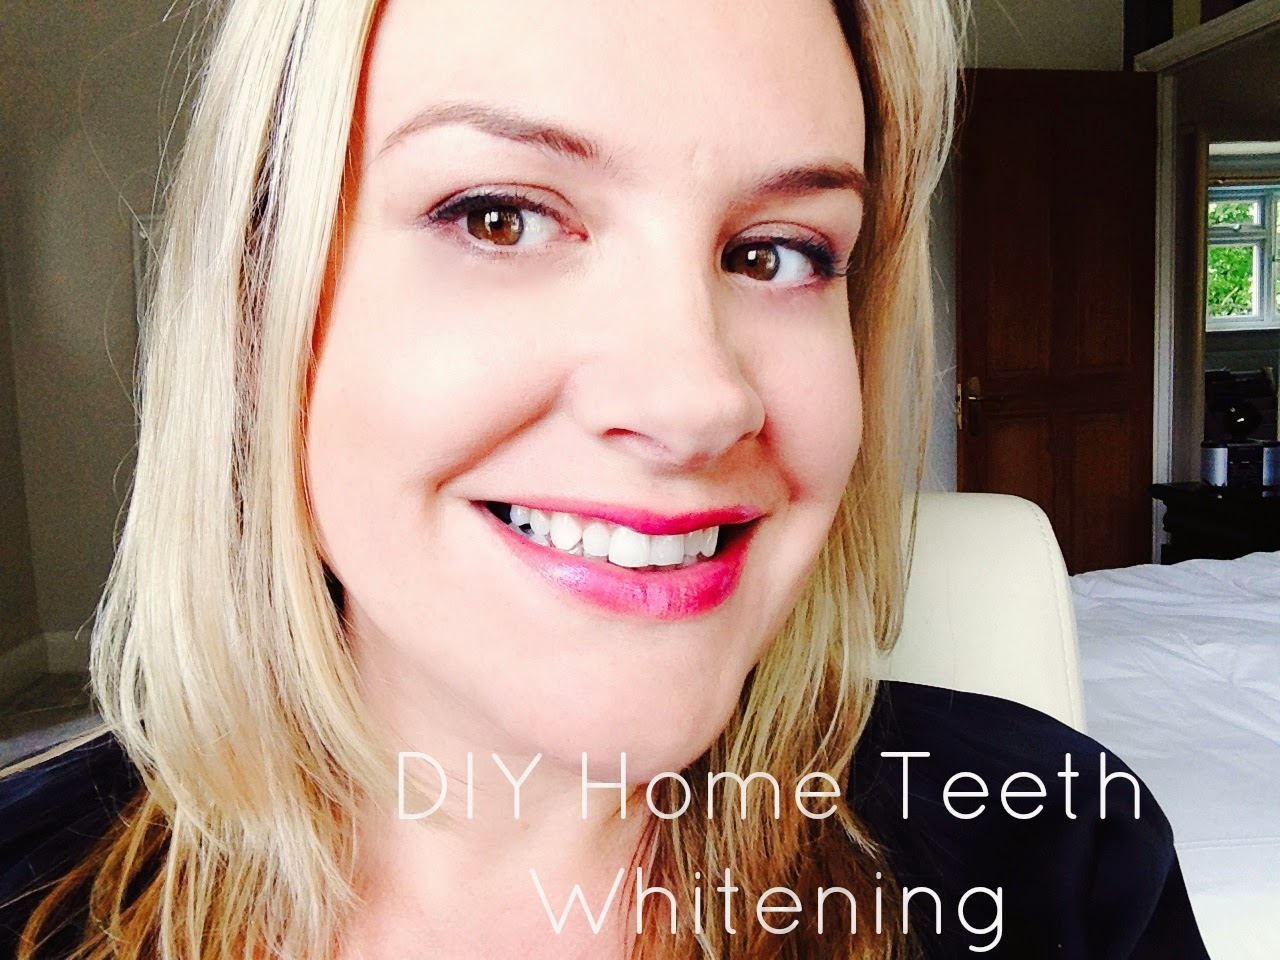 DIY-Home-whiteneing-Teeth-UK-How-To